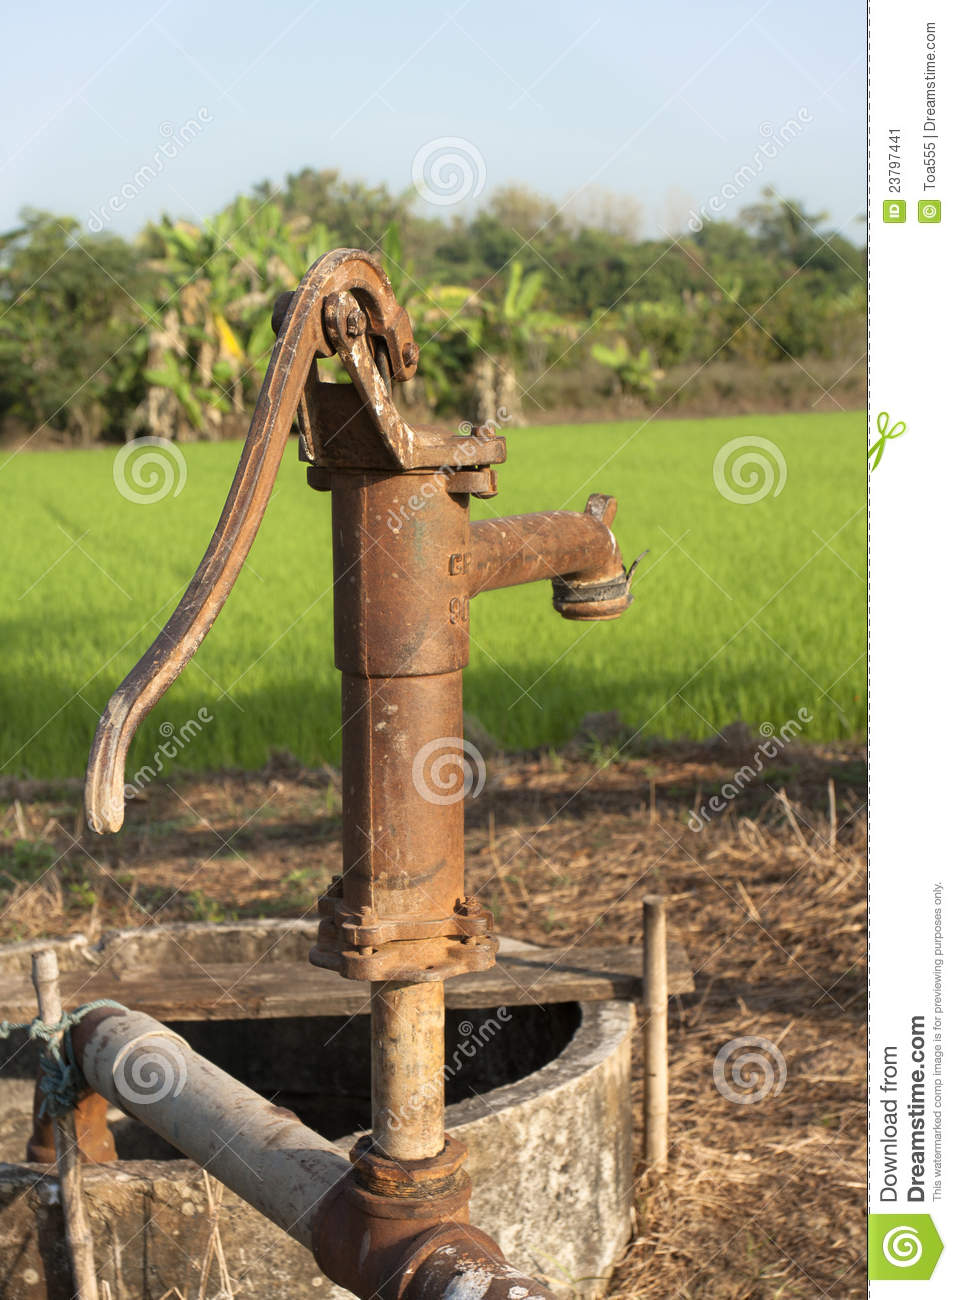 Vintage water pump stock image. Image of country, horse - 23797441